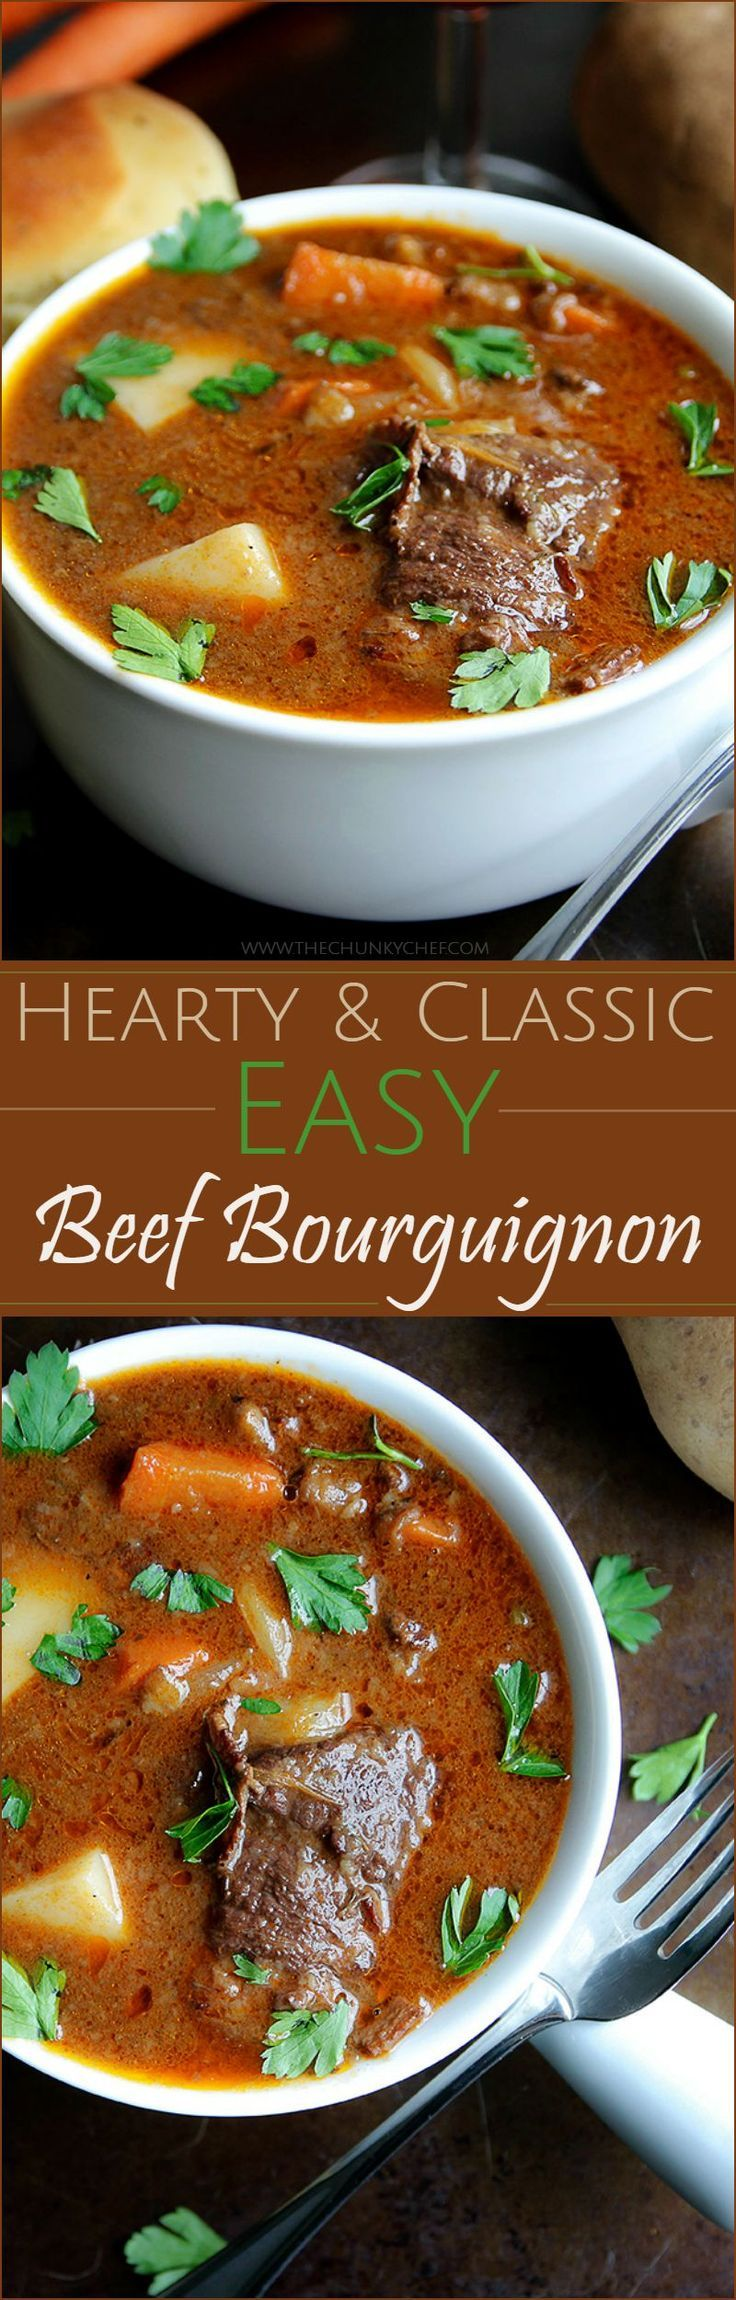 Beef Bourguignon | The Chunky Chef | Such a classic recipe... revamped a little bit and made easy to make for your whole family. Try this beef bourguignon soon!: